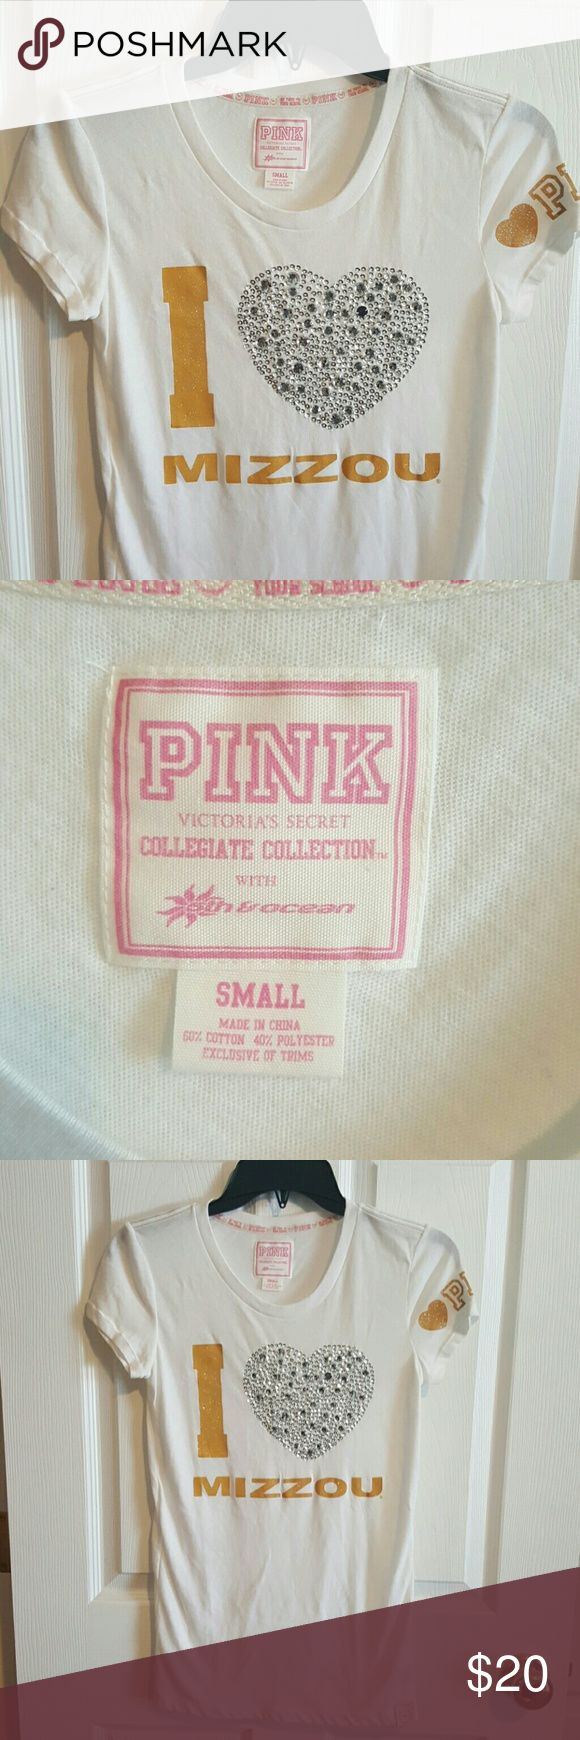 VS PINK *I Love Mizzou* Bling Shirt This shirt is from Victoria Secret Collegiate Collection.  Size Small. PINK Victoria's Secret Tops Tees - Short Sleeve